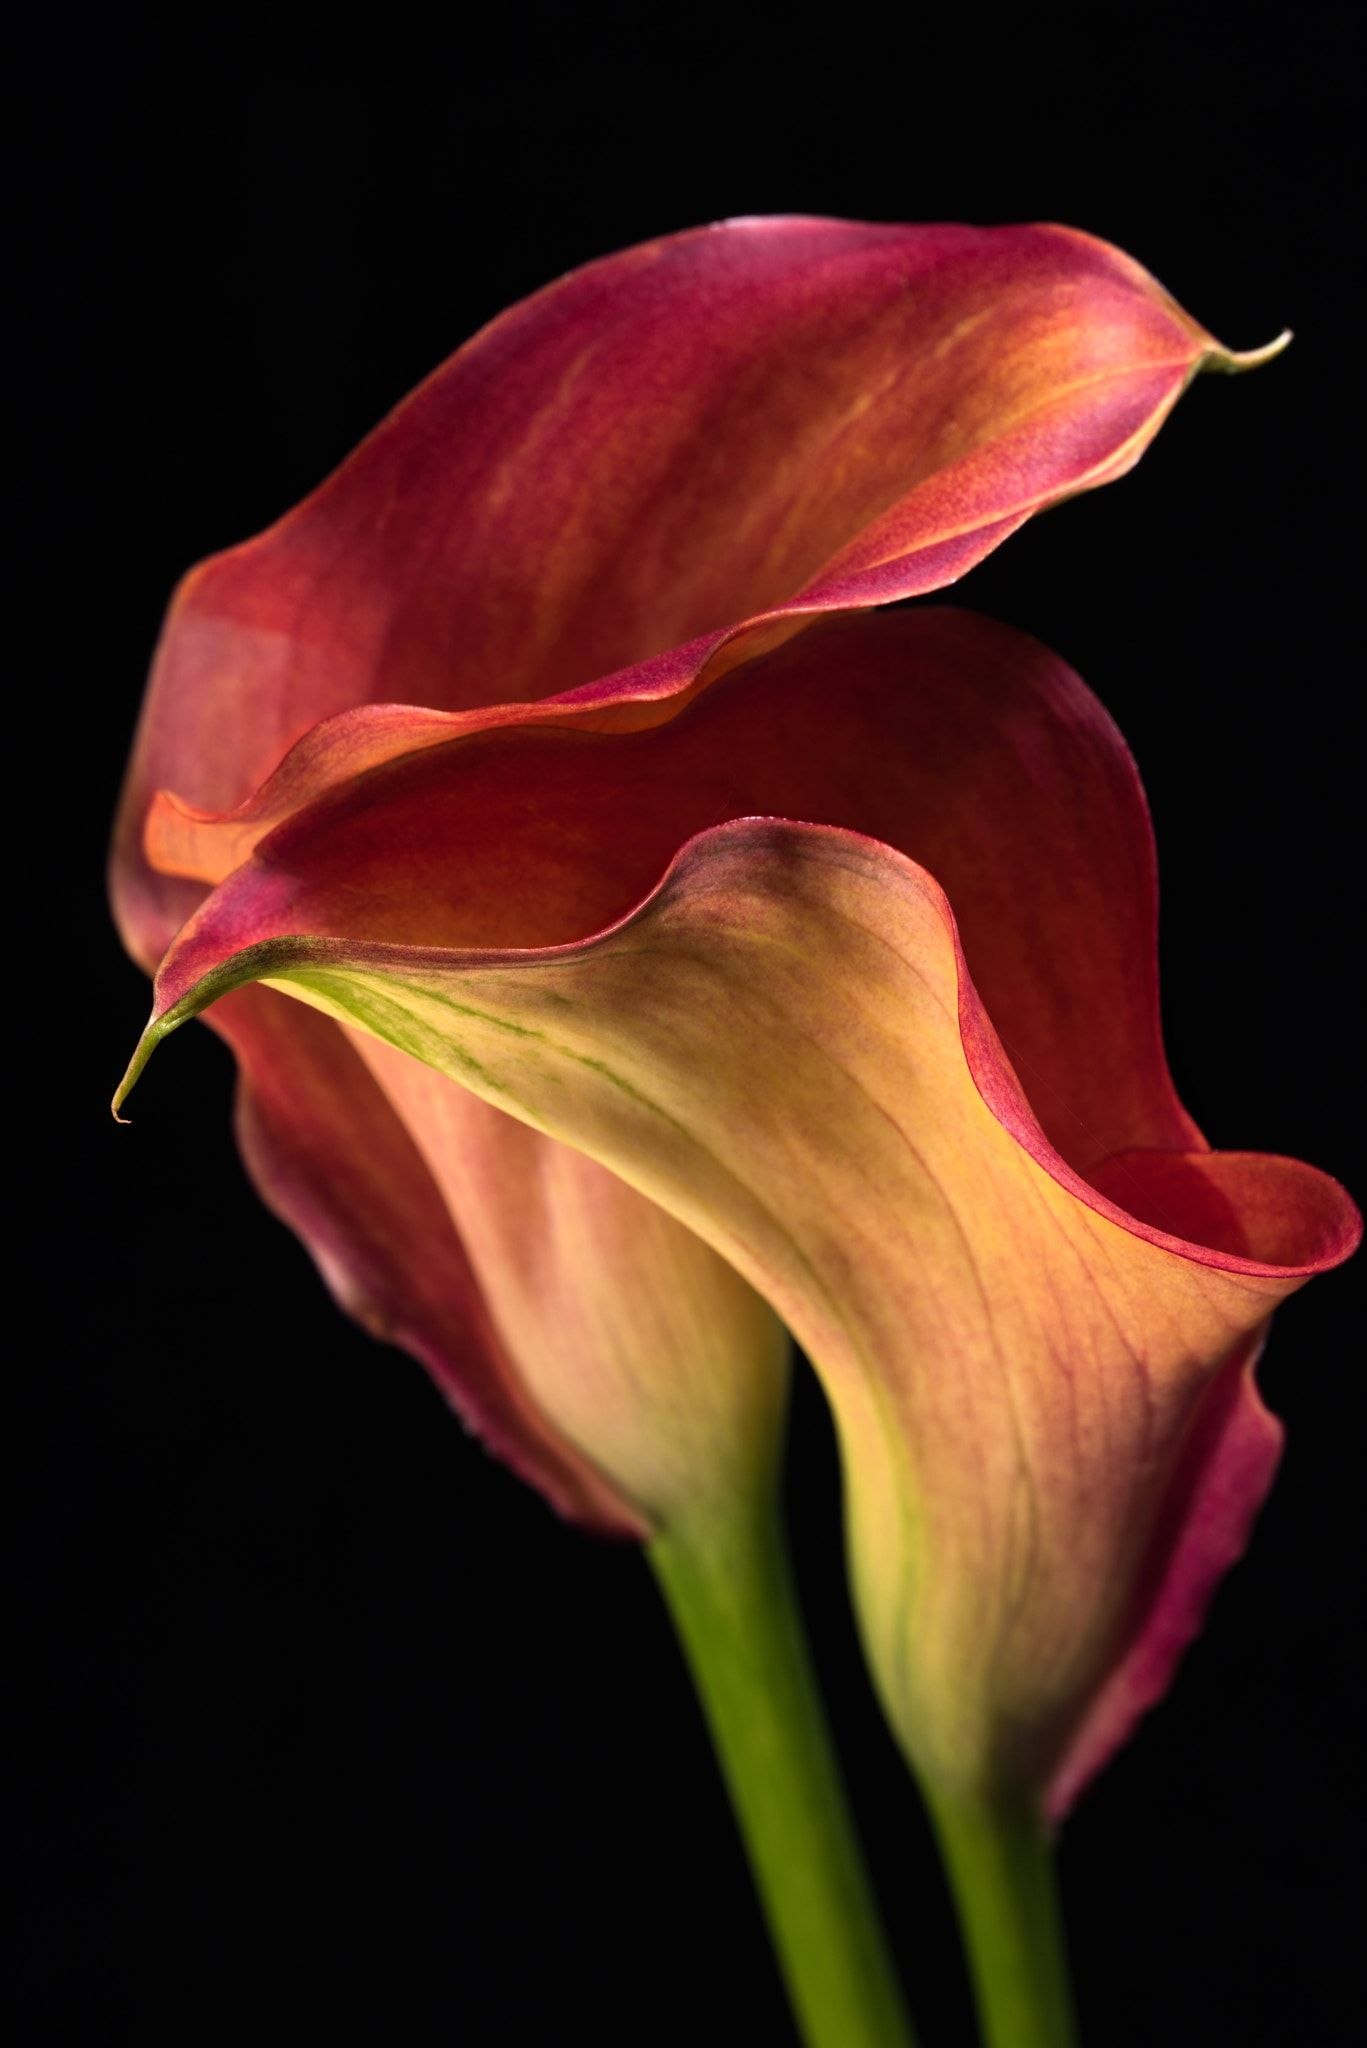 Two Callas - A fine art image of two beautiful Calla Lily flowers ...